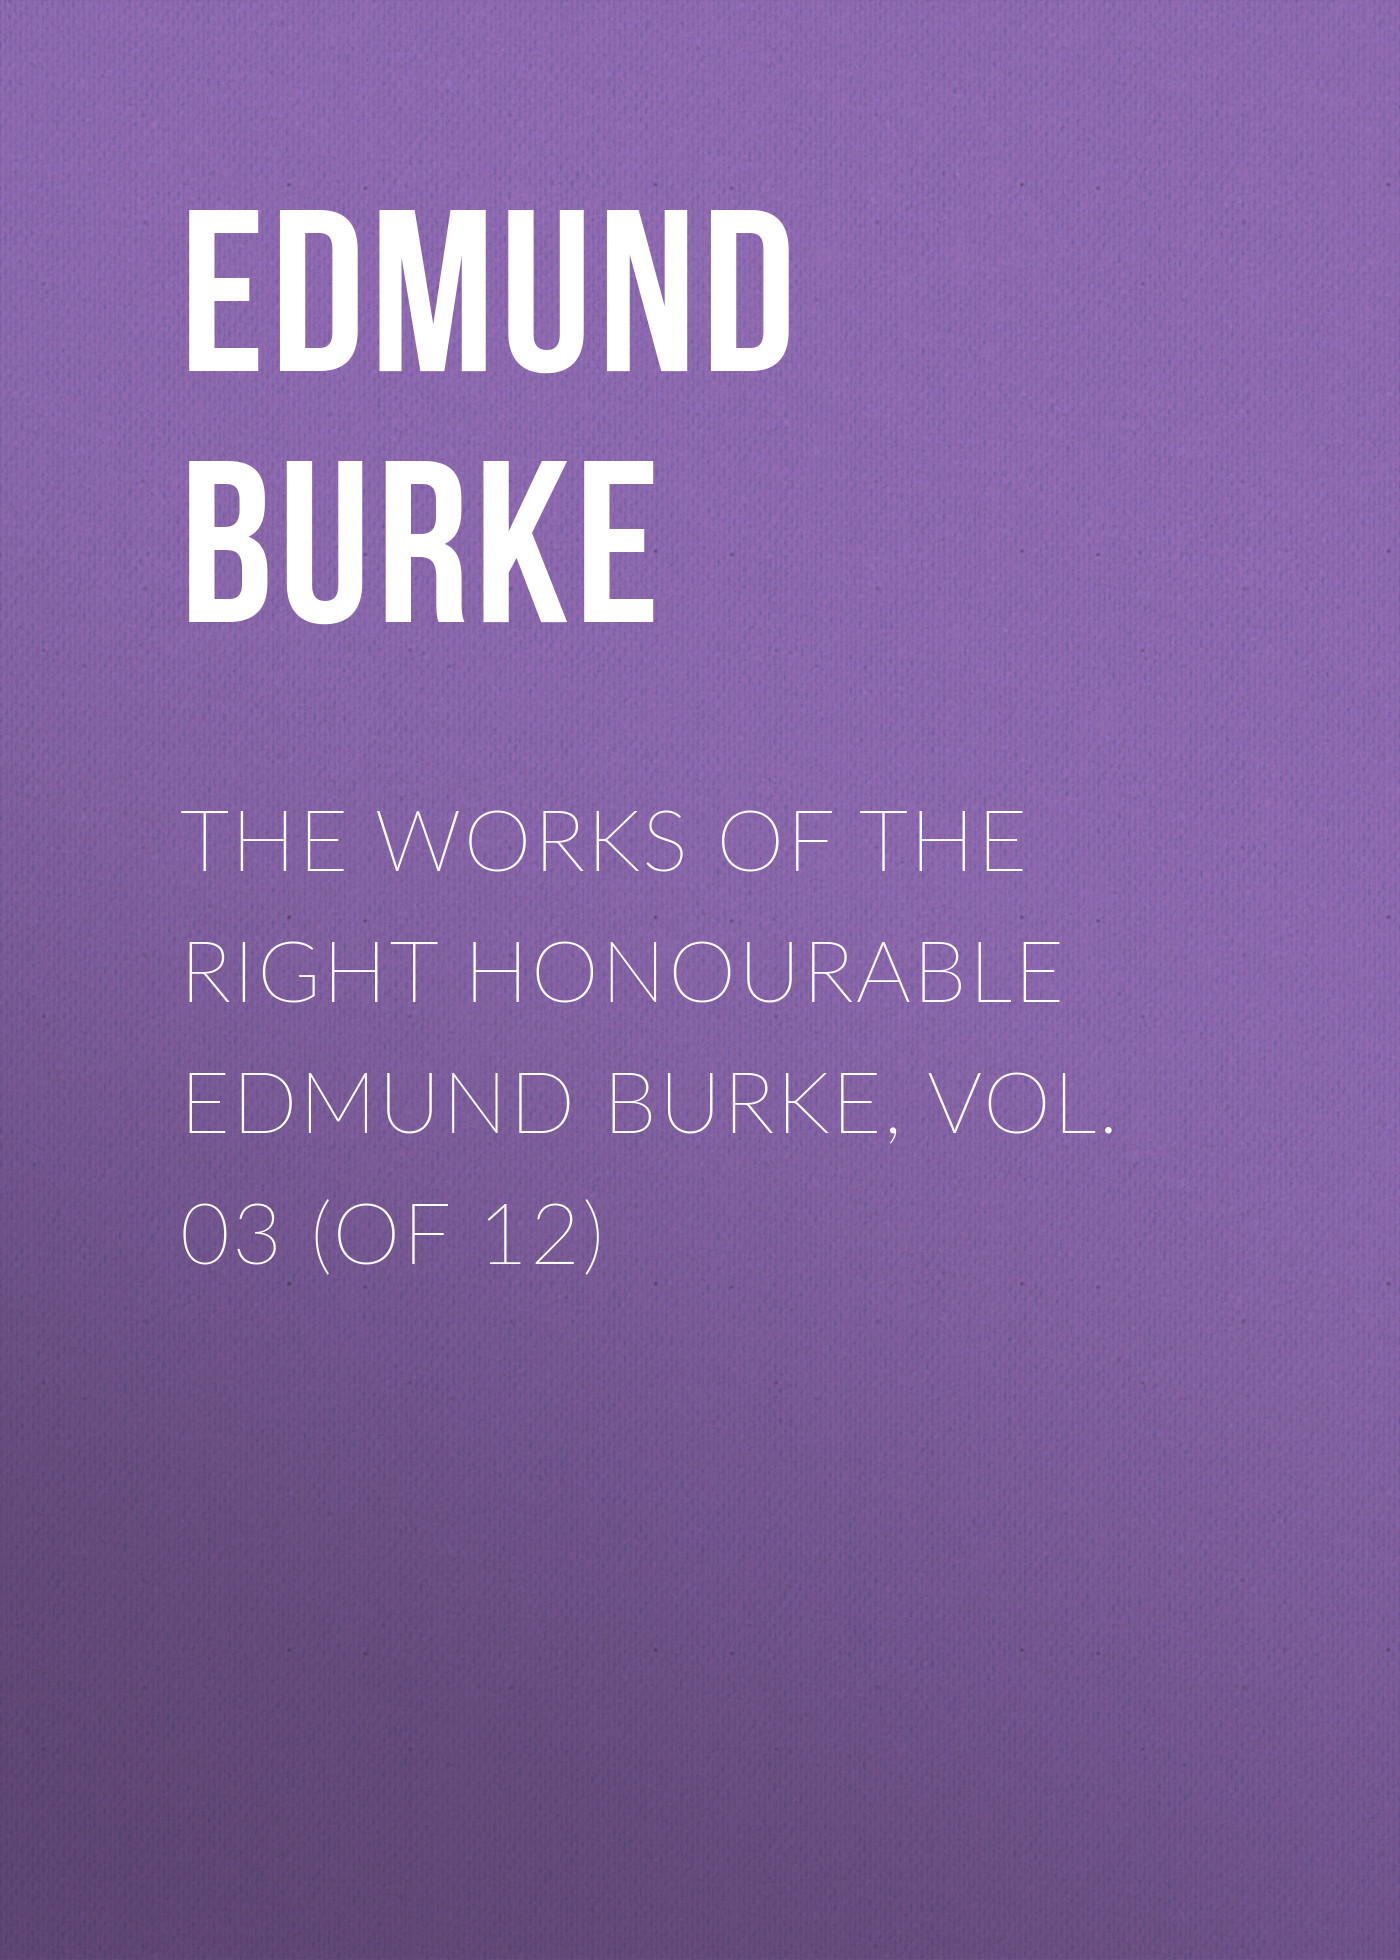 Edmund Burke The Works of the Right Honourable Edmund Burke, Vol. 03 (of 12) mark akenside the poetical works vol 1